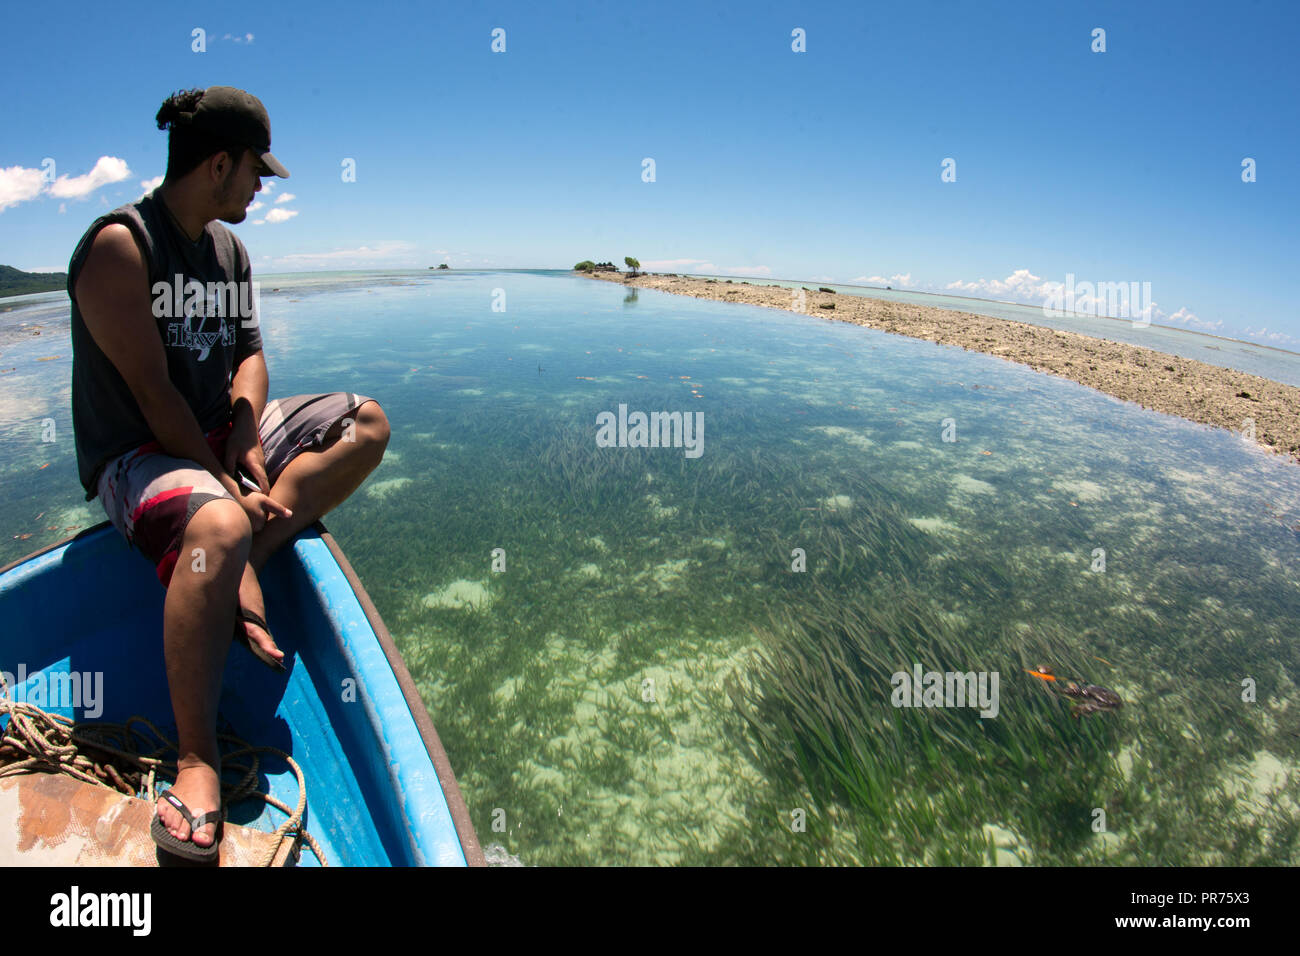 Micronesian man on a boat ride over a seagrass bed in the lagoon of Pohnpei, Federated States of Micronesia - Stock Image